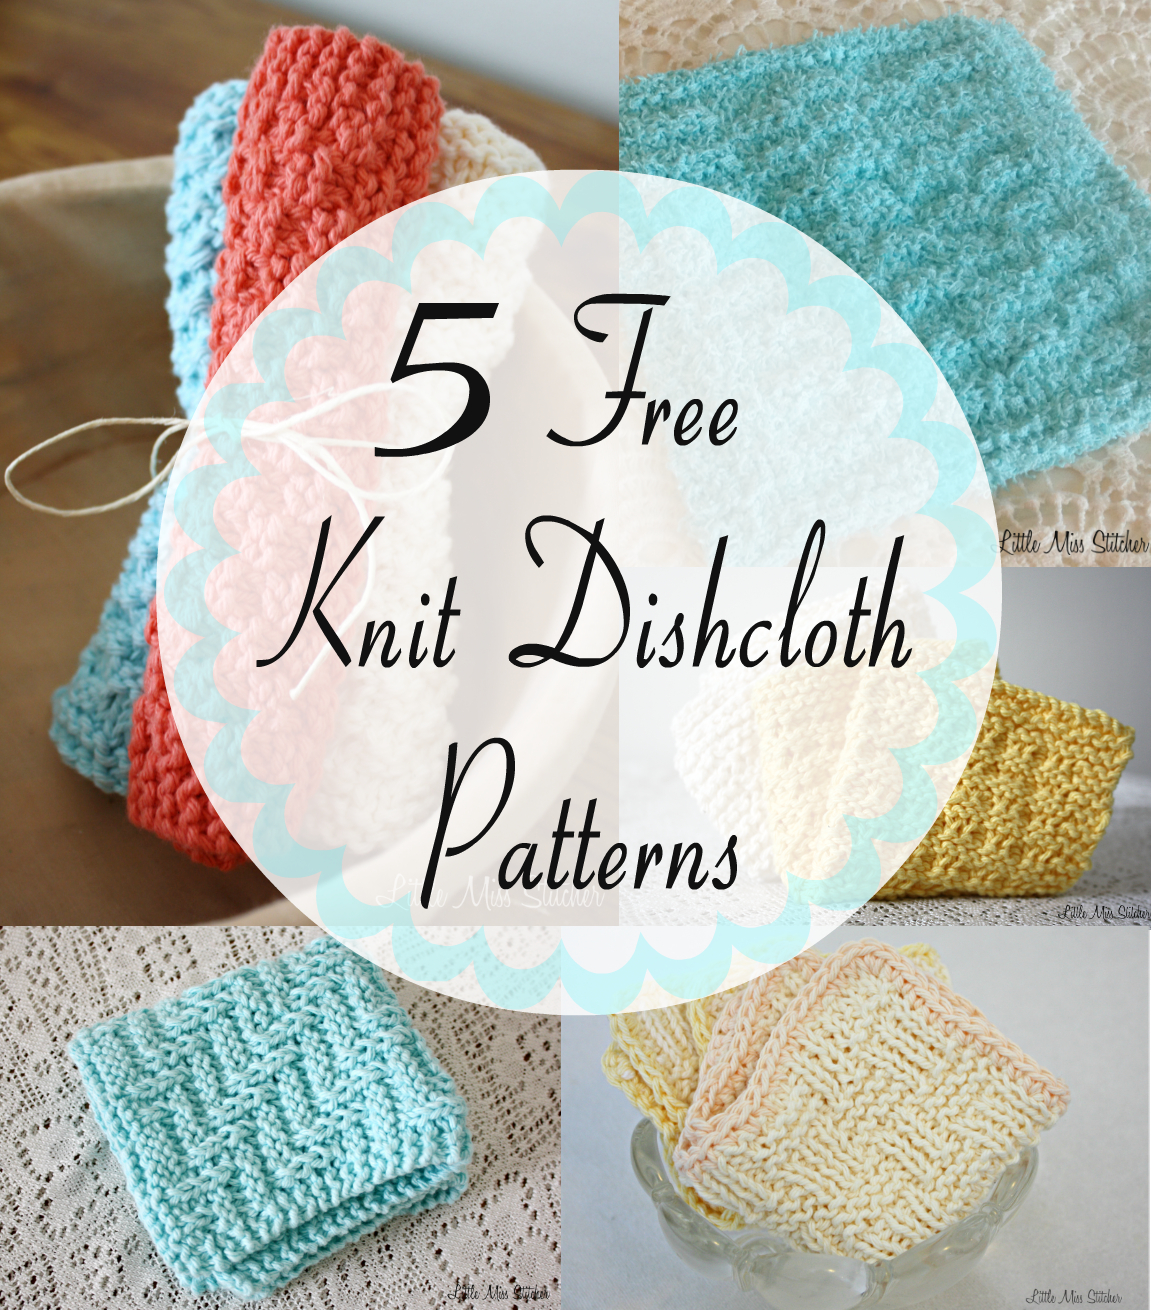 Free Knitted Cotton Dishcloth Patterns Little Miss Stitcher 5 Free Knit Dishcloth Patterns